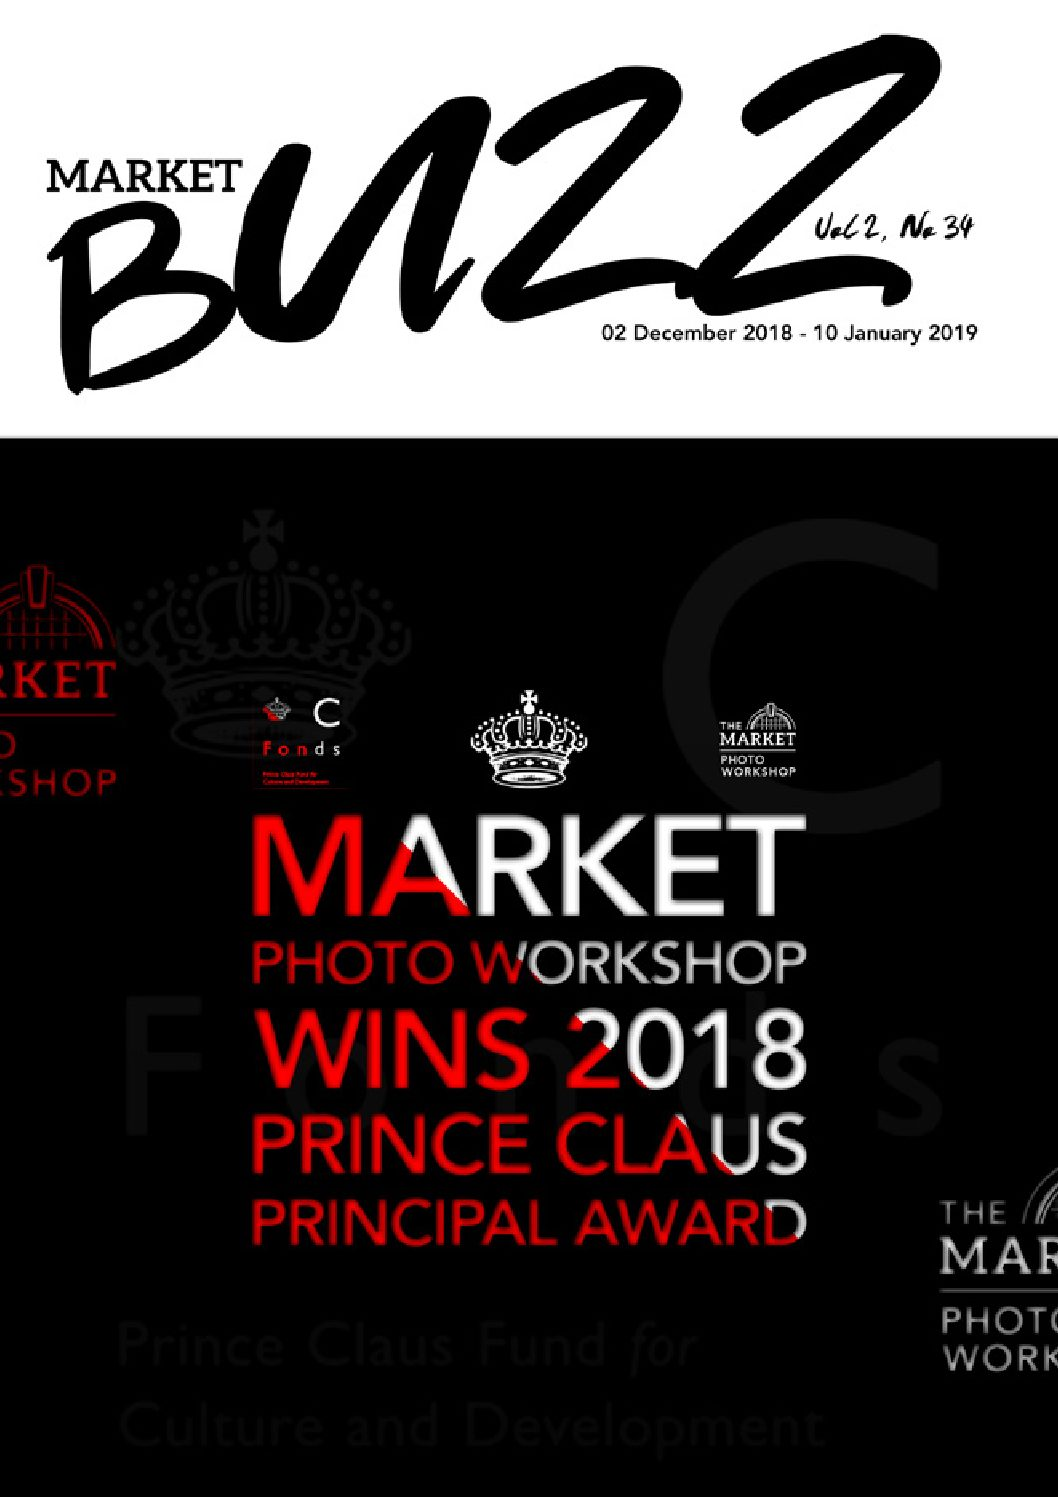 market-buzz-volume-2-no34